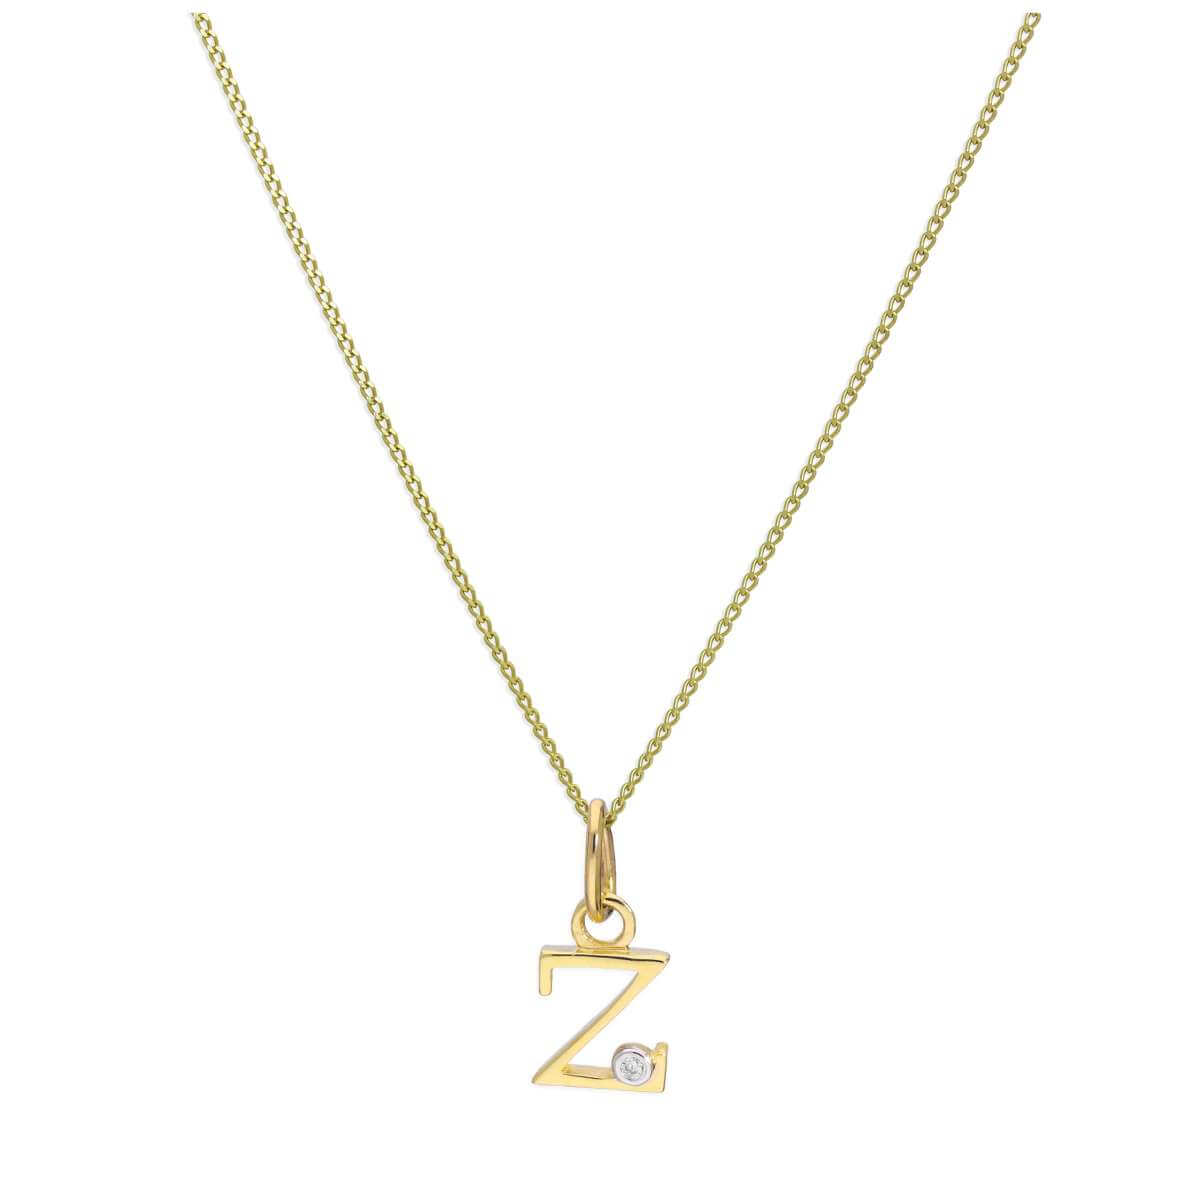 9ct Yellow Gold Single Stone Diamond 0.4 points Letter Z Necklace Pendant 16 - 20 Inches